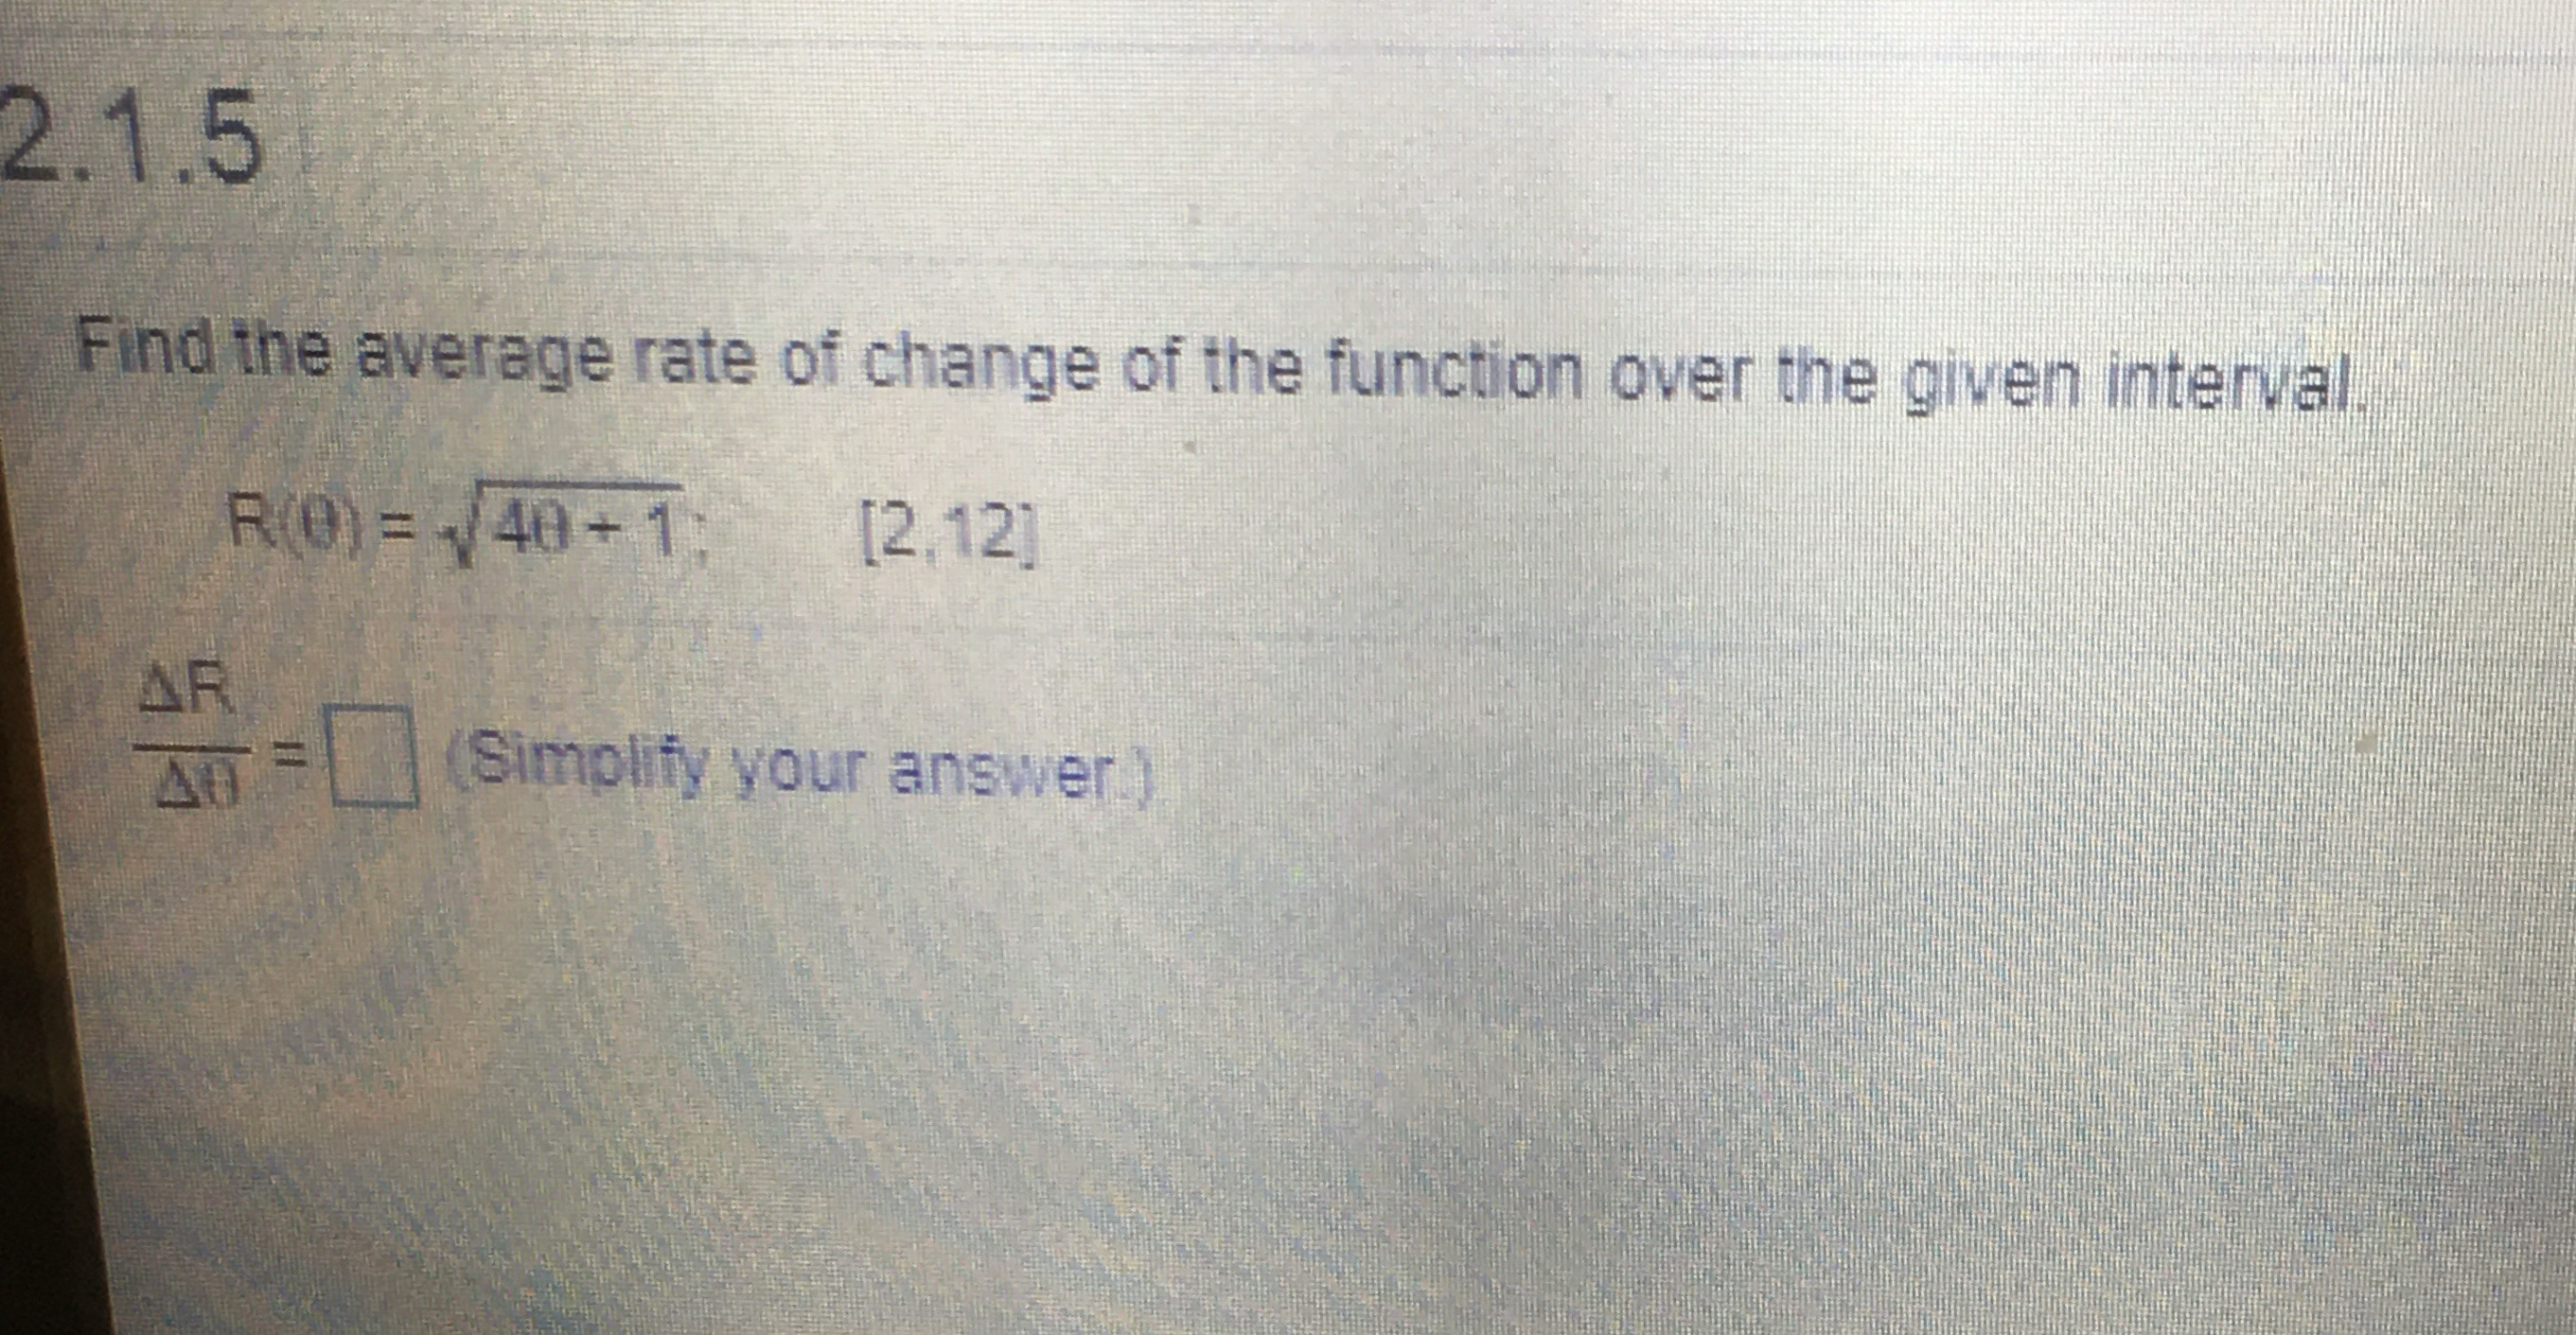 2.1.5 Find the average rate of change of the function over the given interval. R(0) = /40+1: [2,12] AR (Simplify your answer)